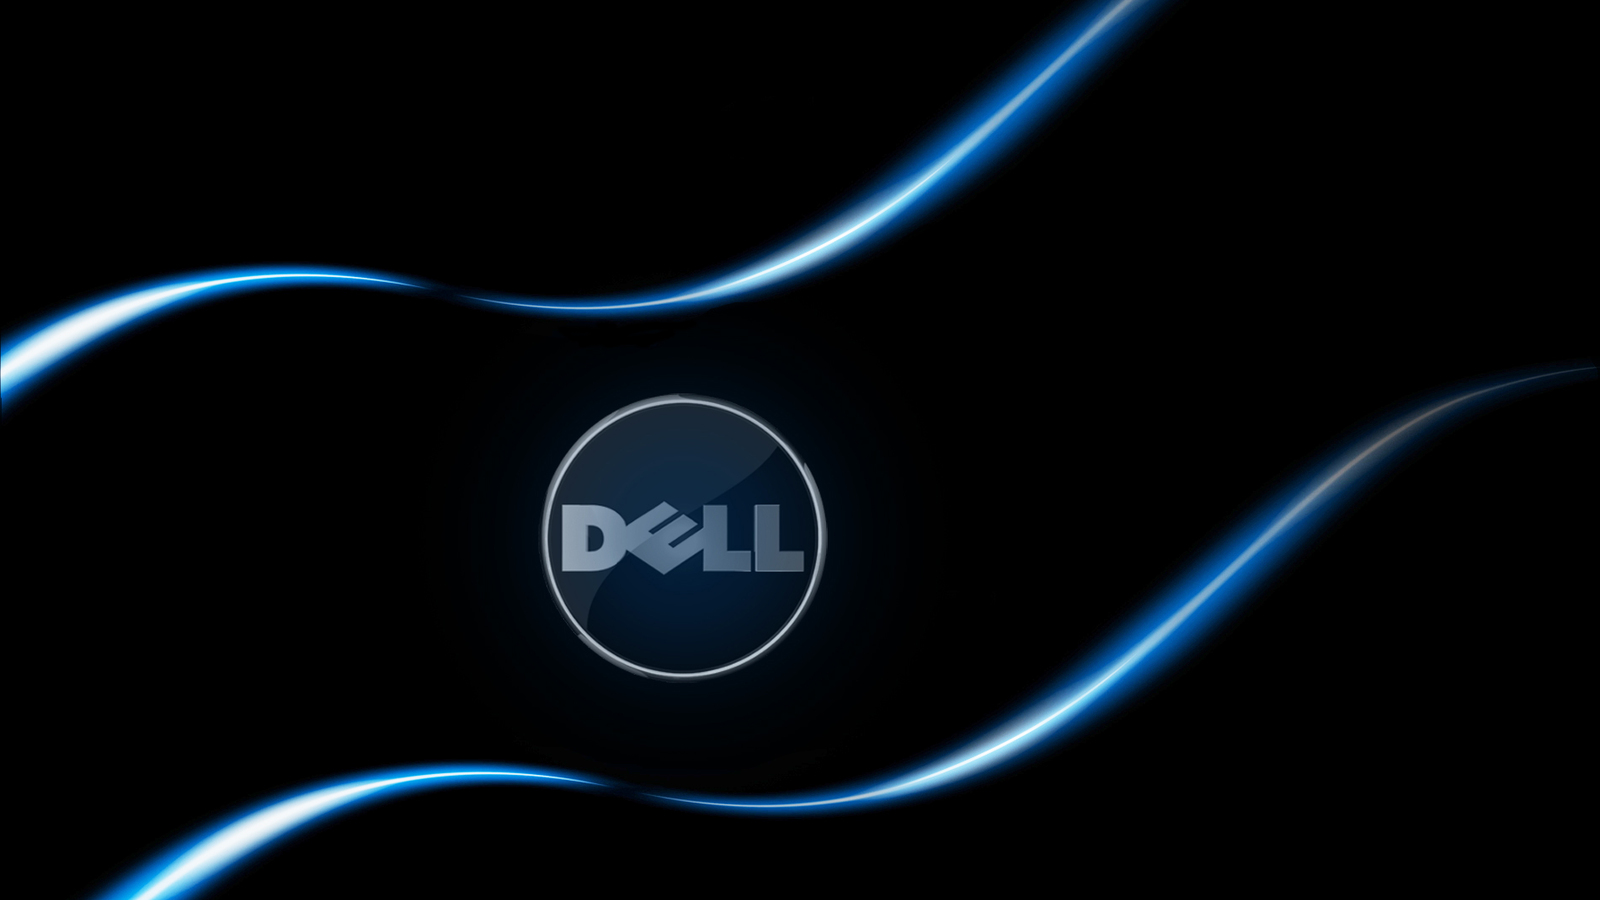 free dell wallpaper 33162